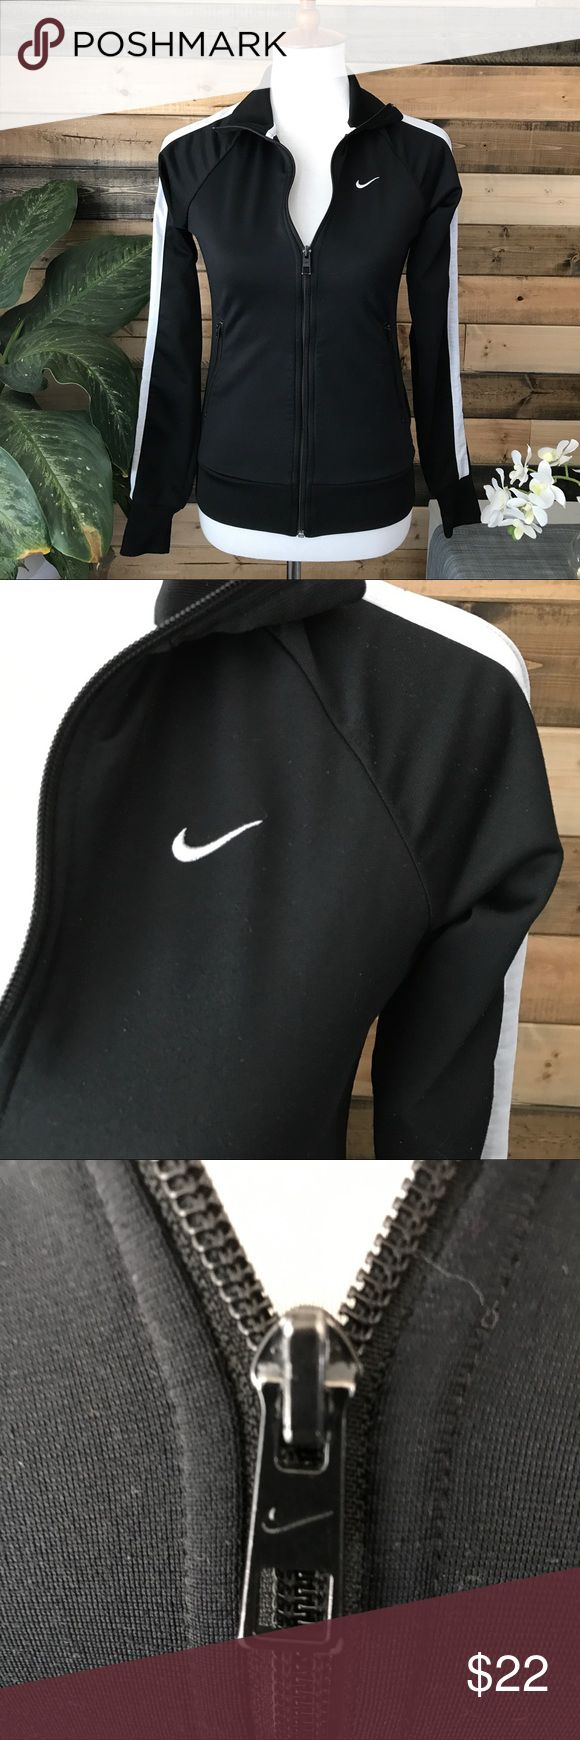 """Nike black & white zip up track jacket! Small Black and white track jacket by Nike! Black body with white stripes down sleeves. Zippered pockets on either side. Good condition. Bust 17"""" Length 24"""" Nike Jackets & Coats"""